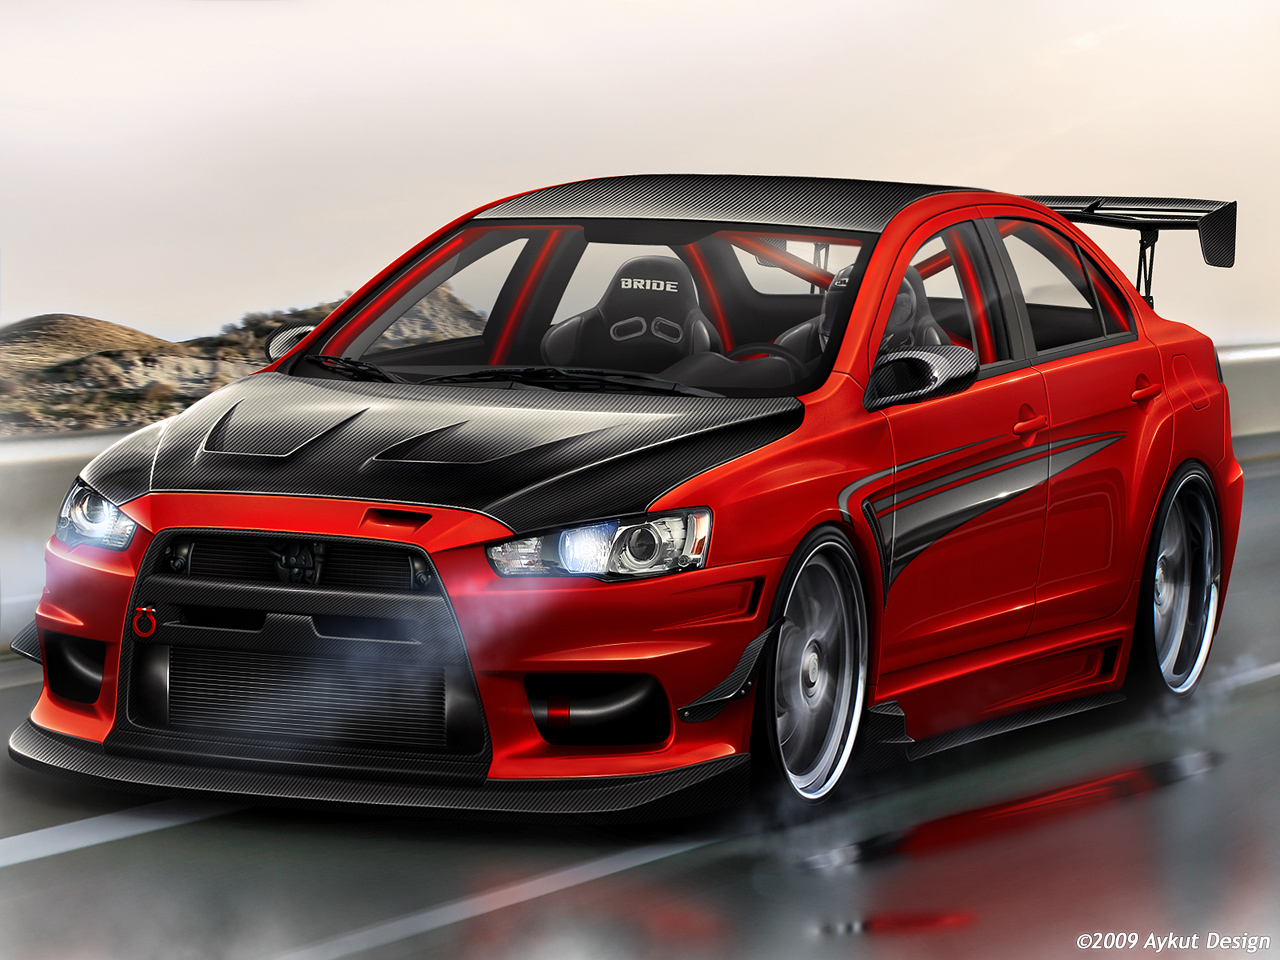 30 Modifikasi Sedan Mitsubishi Lancer Evo Terbaru Otodrift